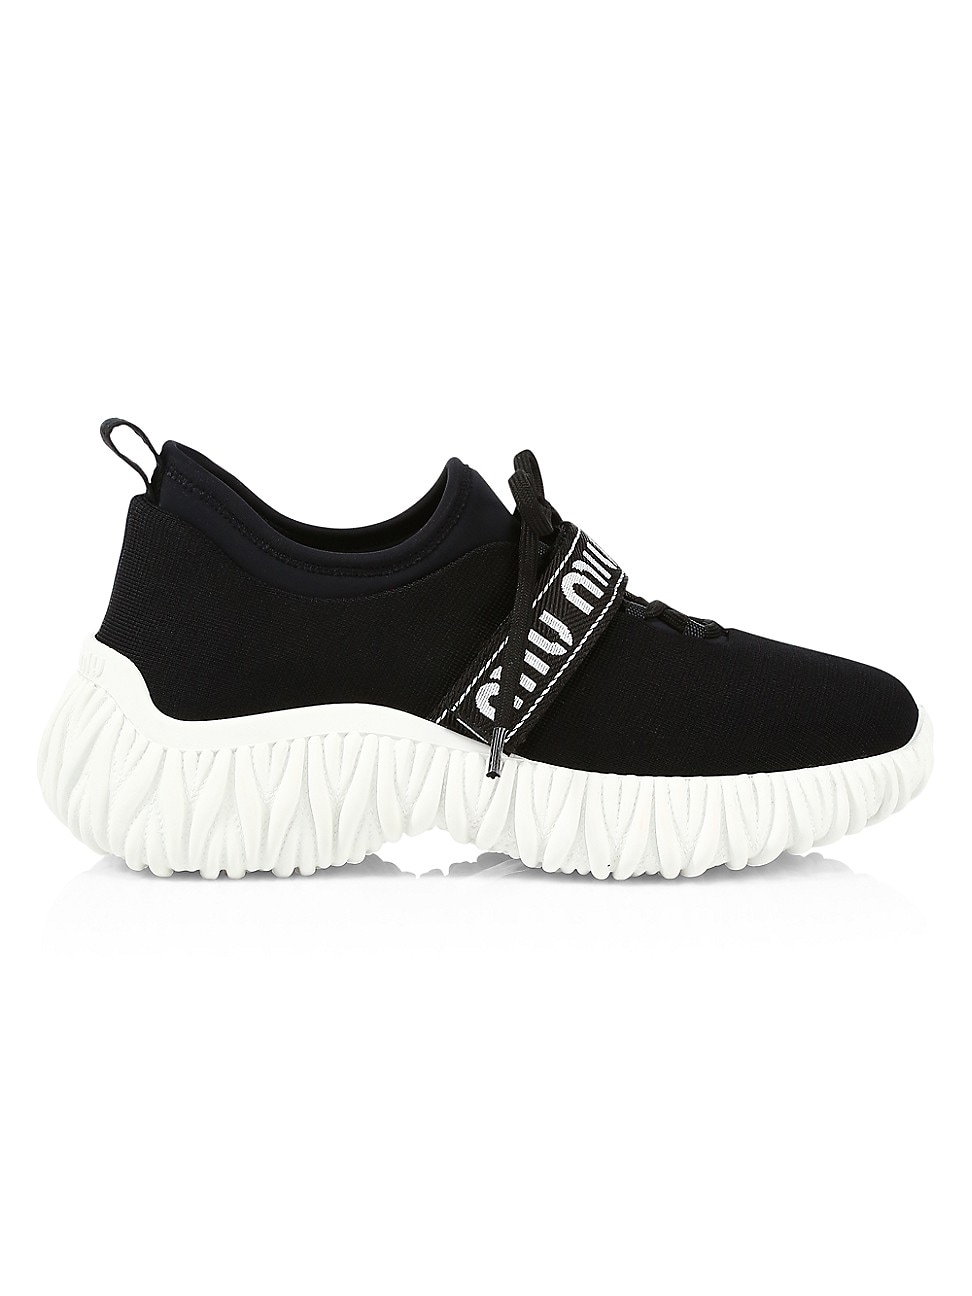 MIU MIU WOMEN'S STRETCH-KNIT SNEAKERS